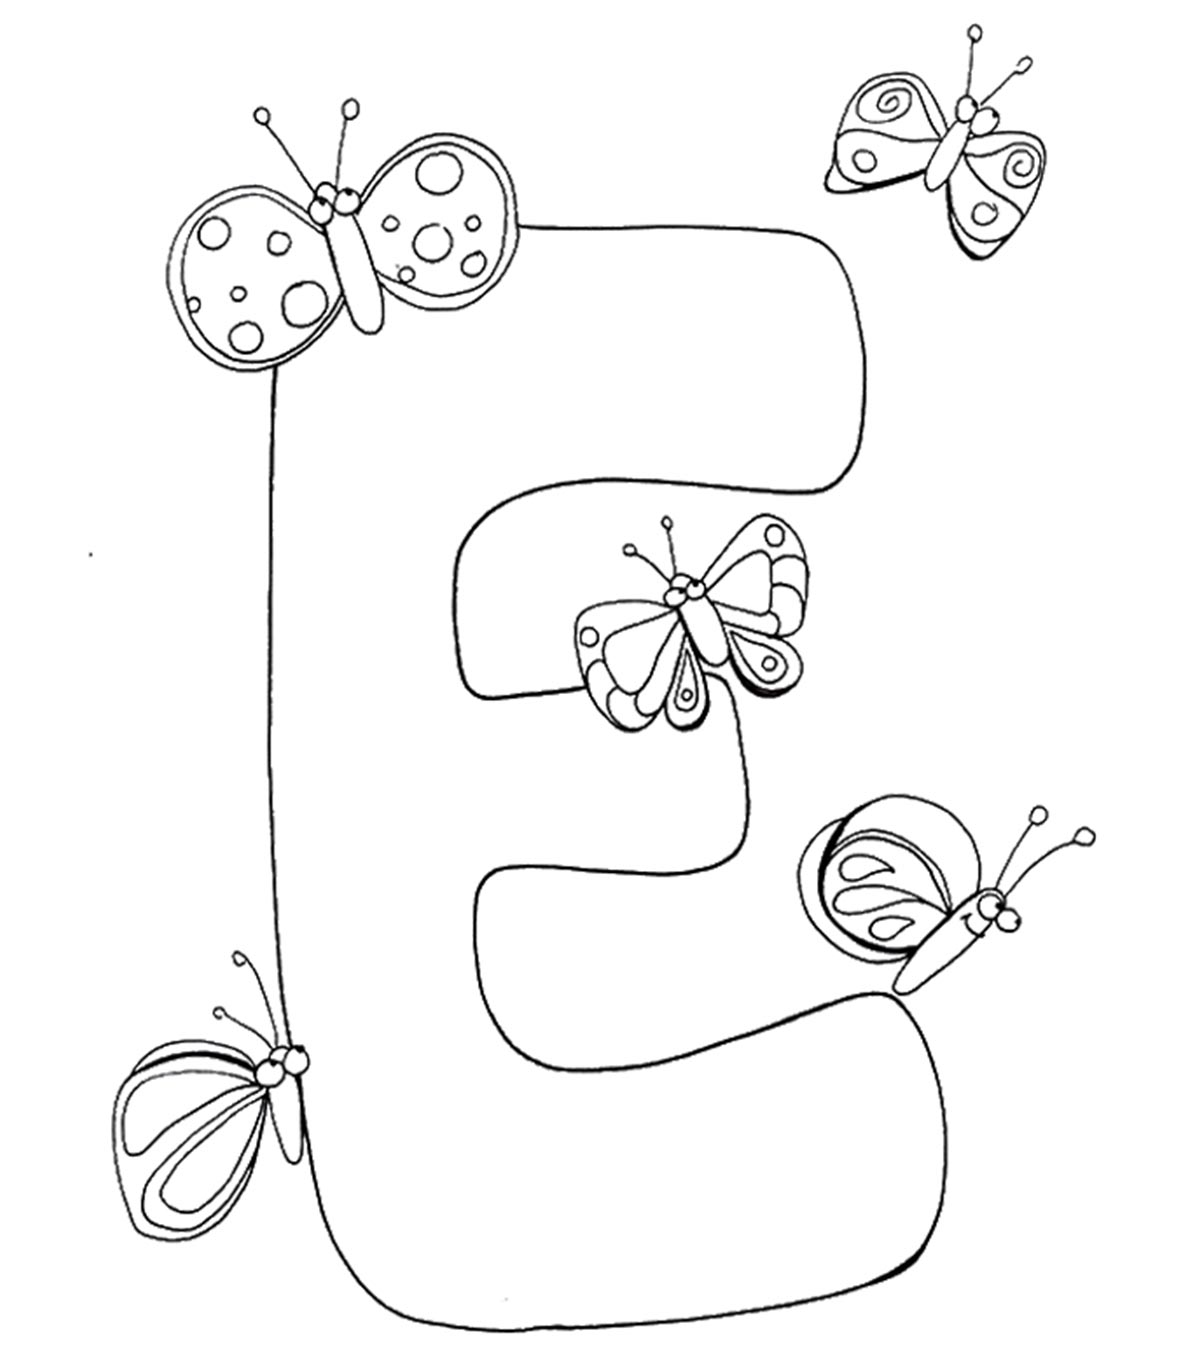 Eductional Coloring Pages - MomJunction